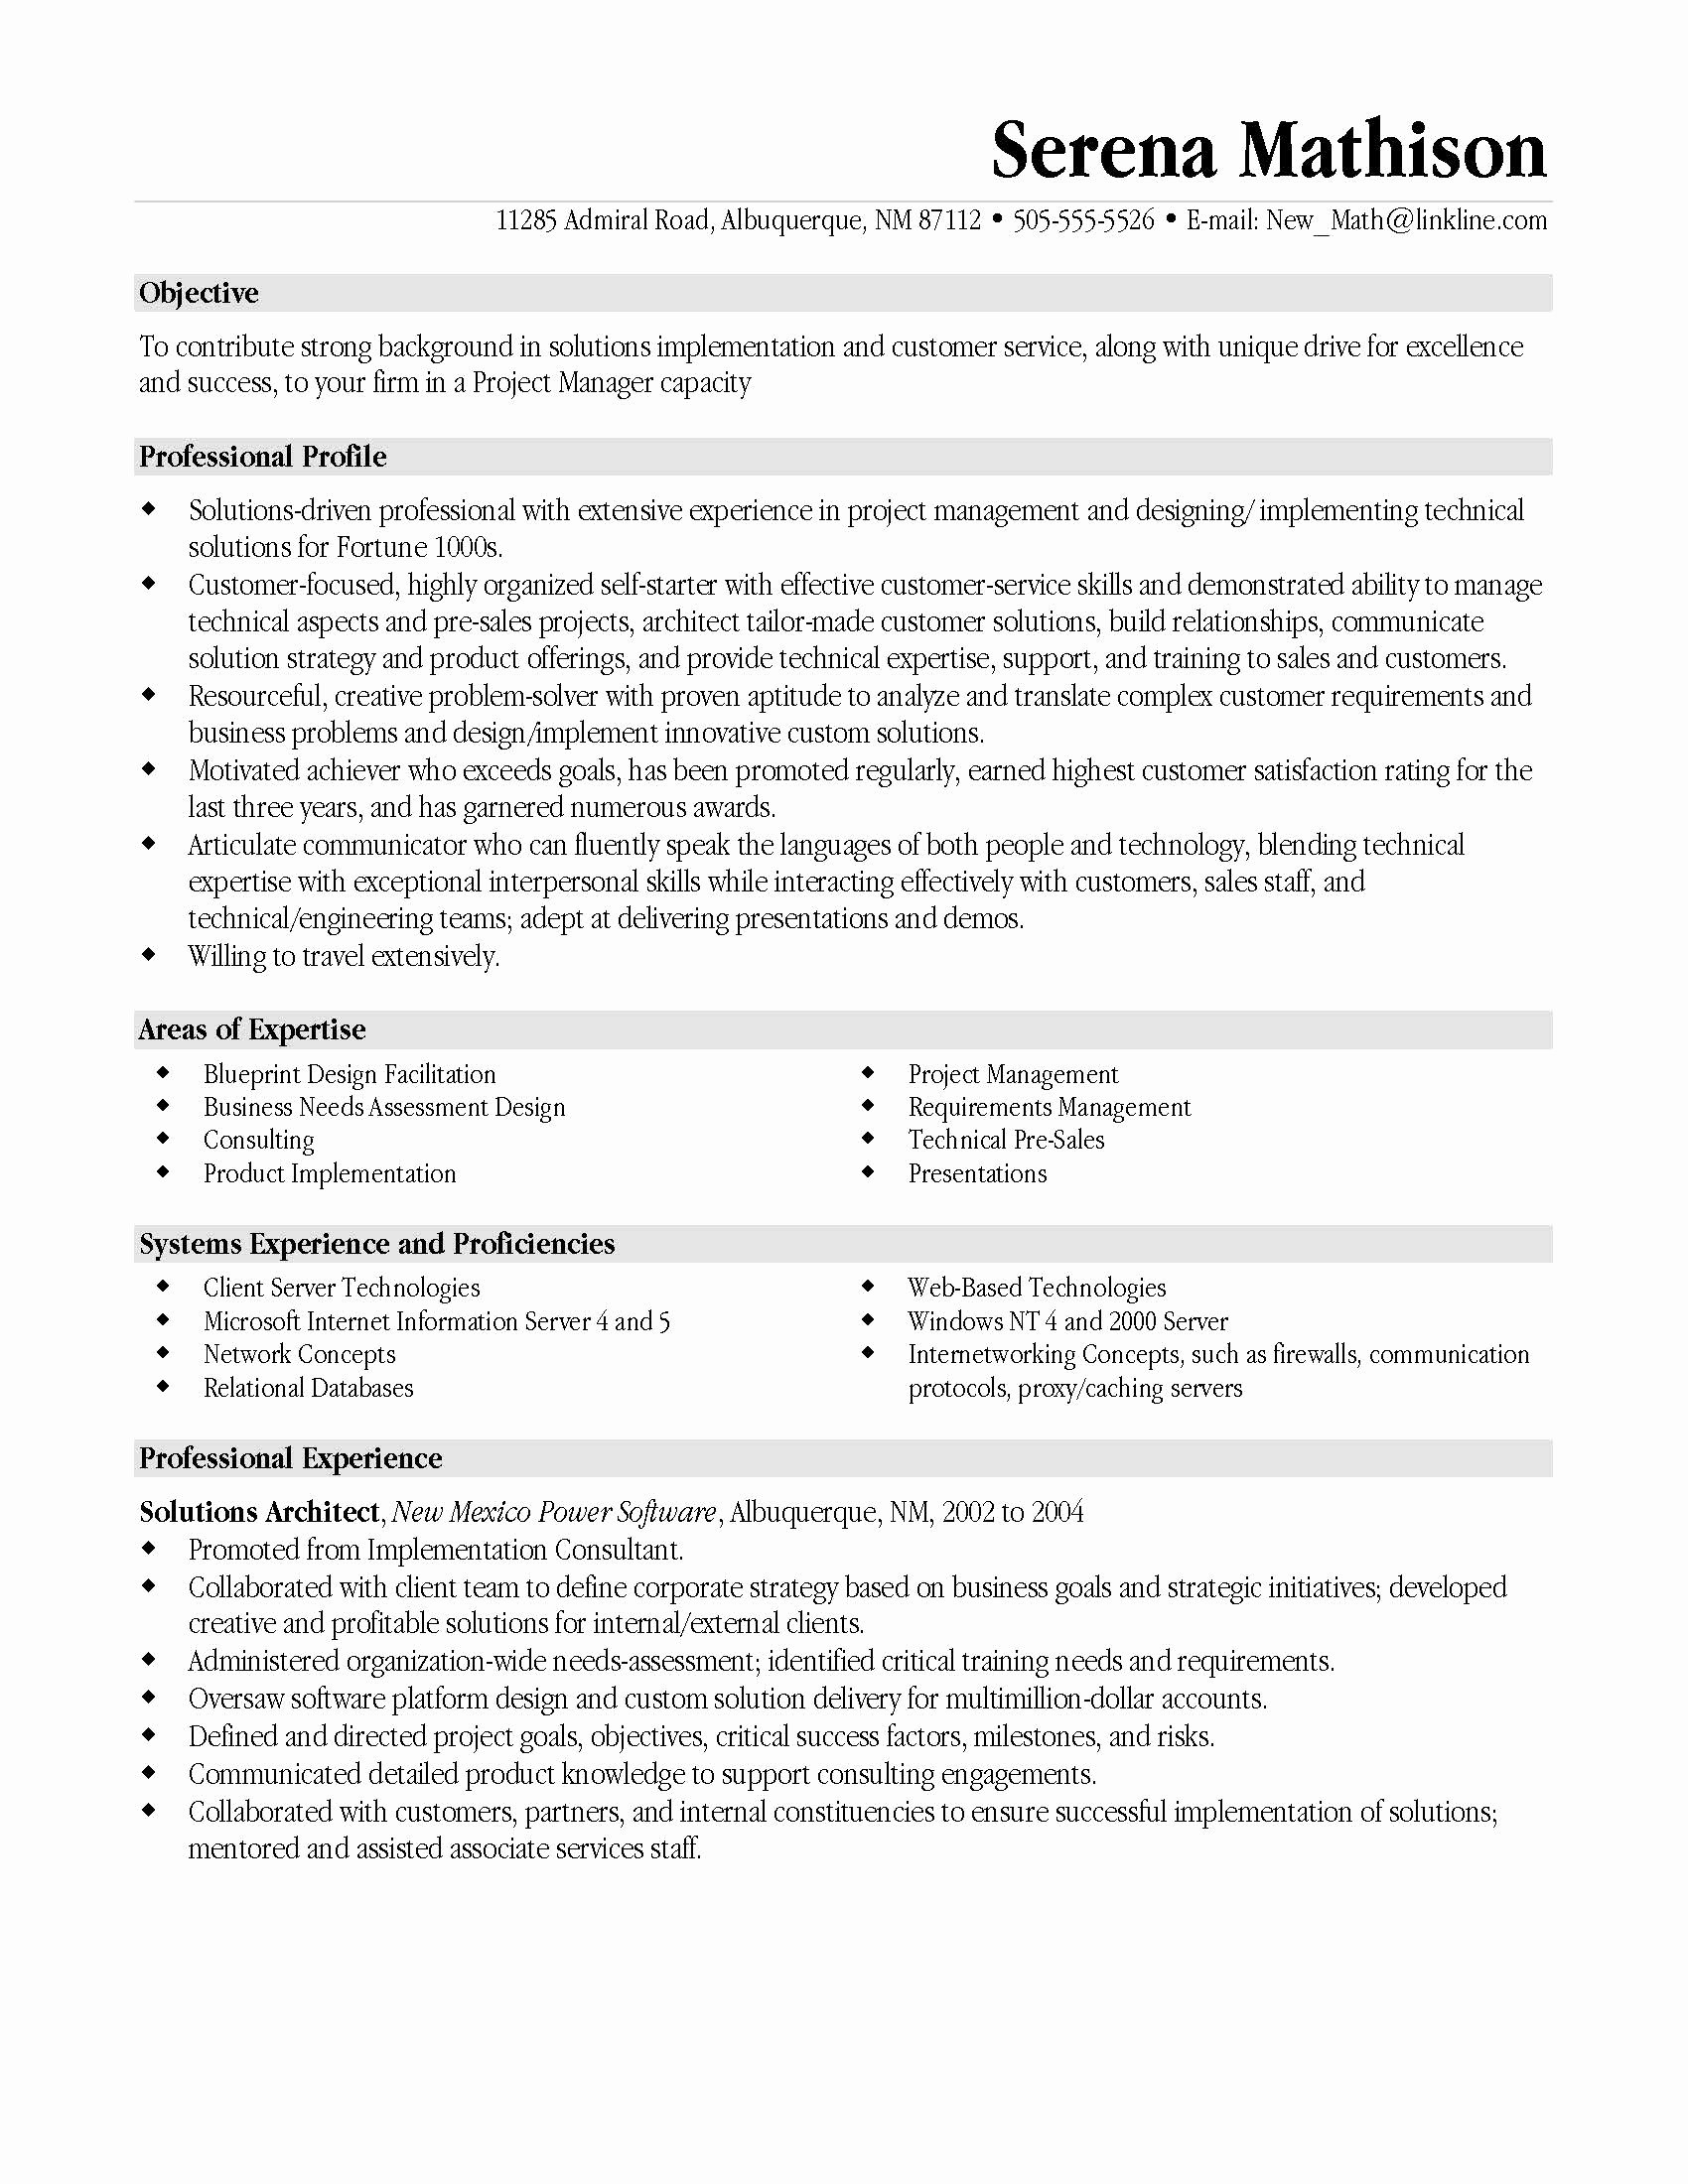 Resumes and Cover Letters the Ohio State University